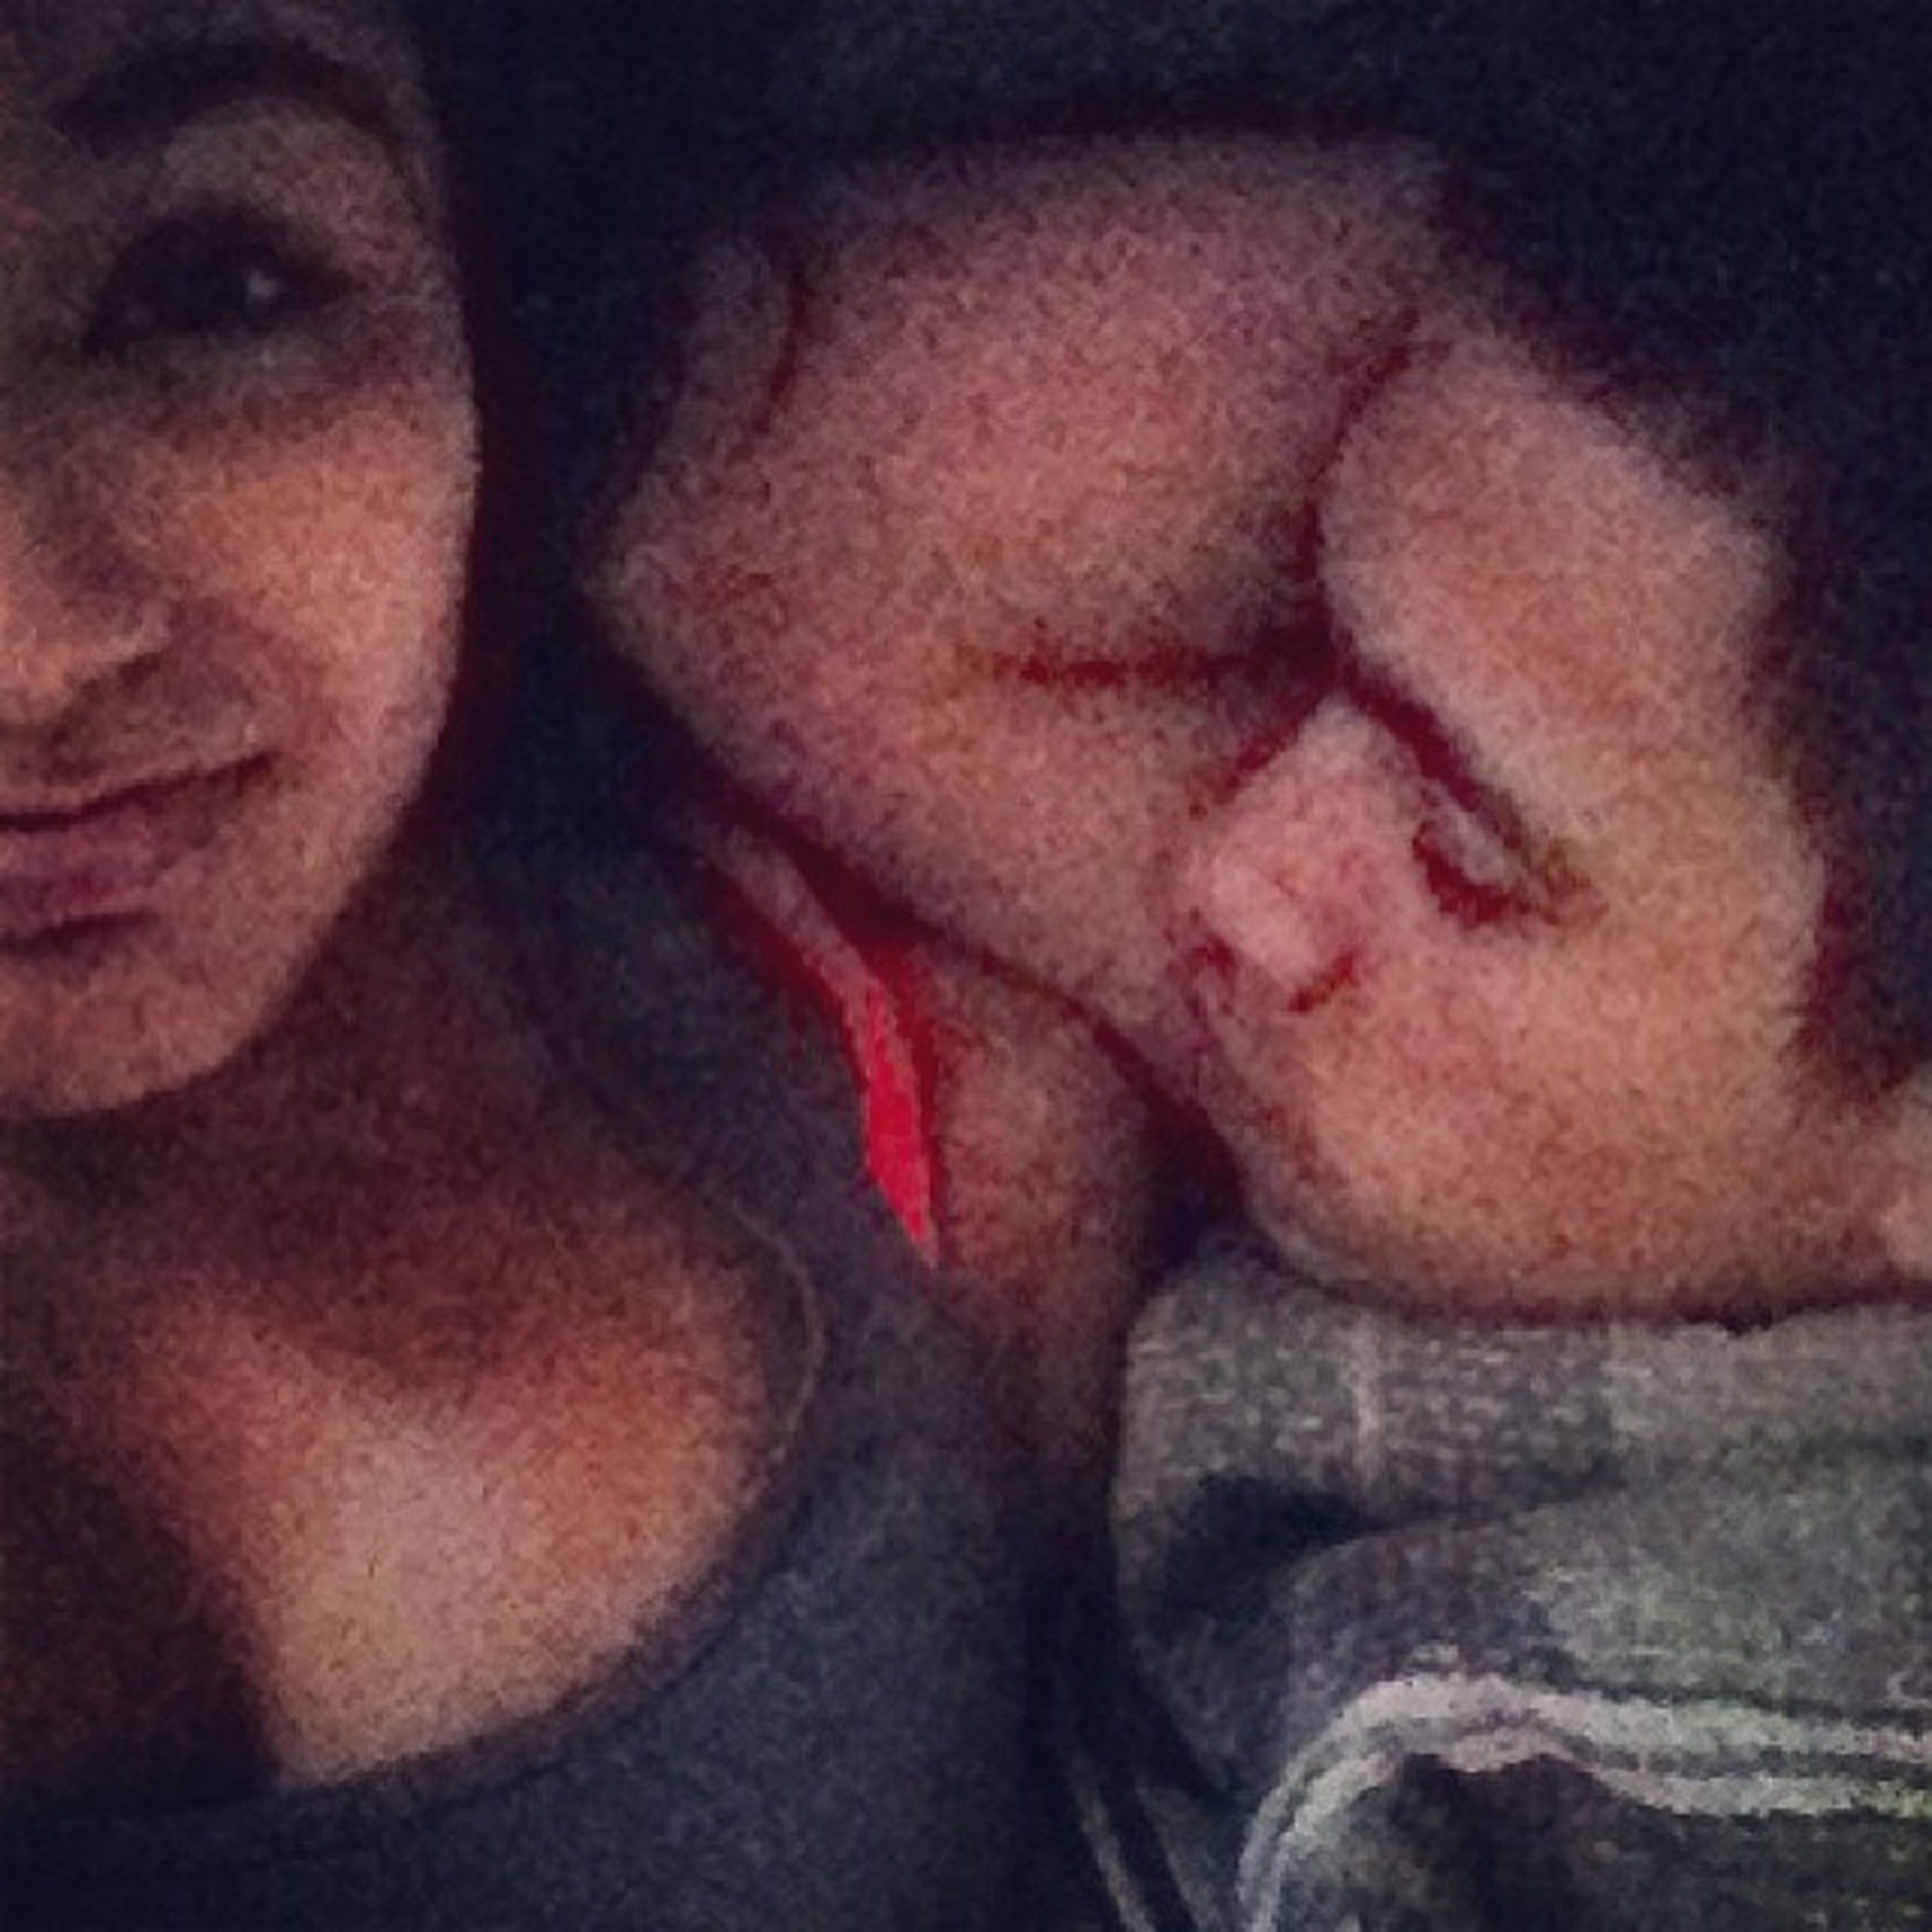 @flightscuba Right now, this is all I wanna do. Missyoubabe Hateworkingovernight Iloveyou